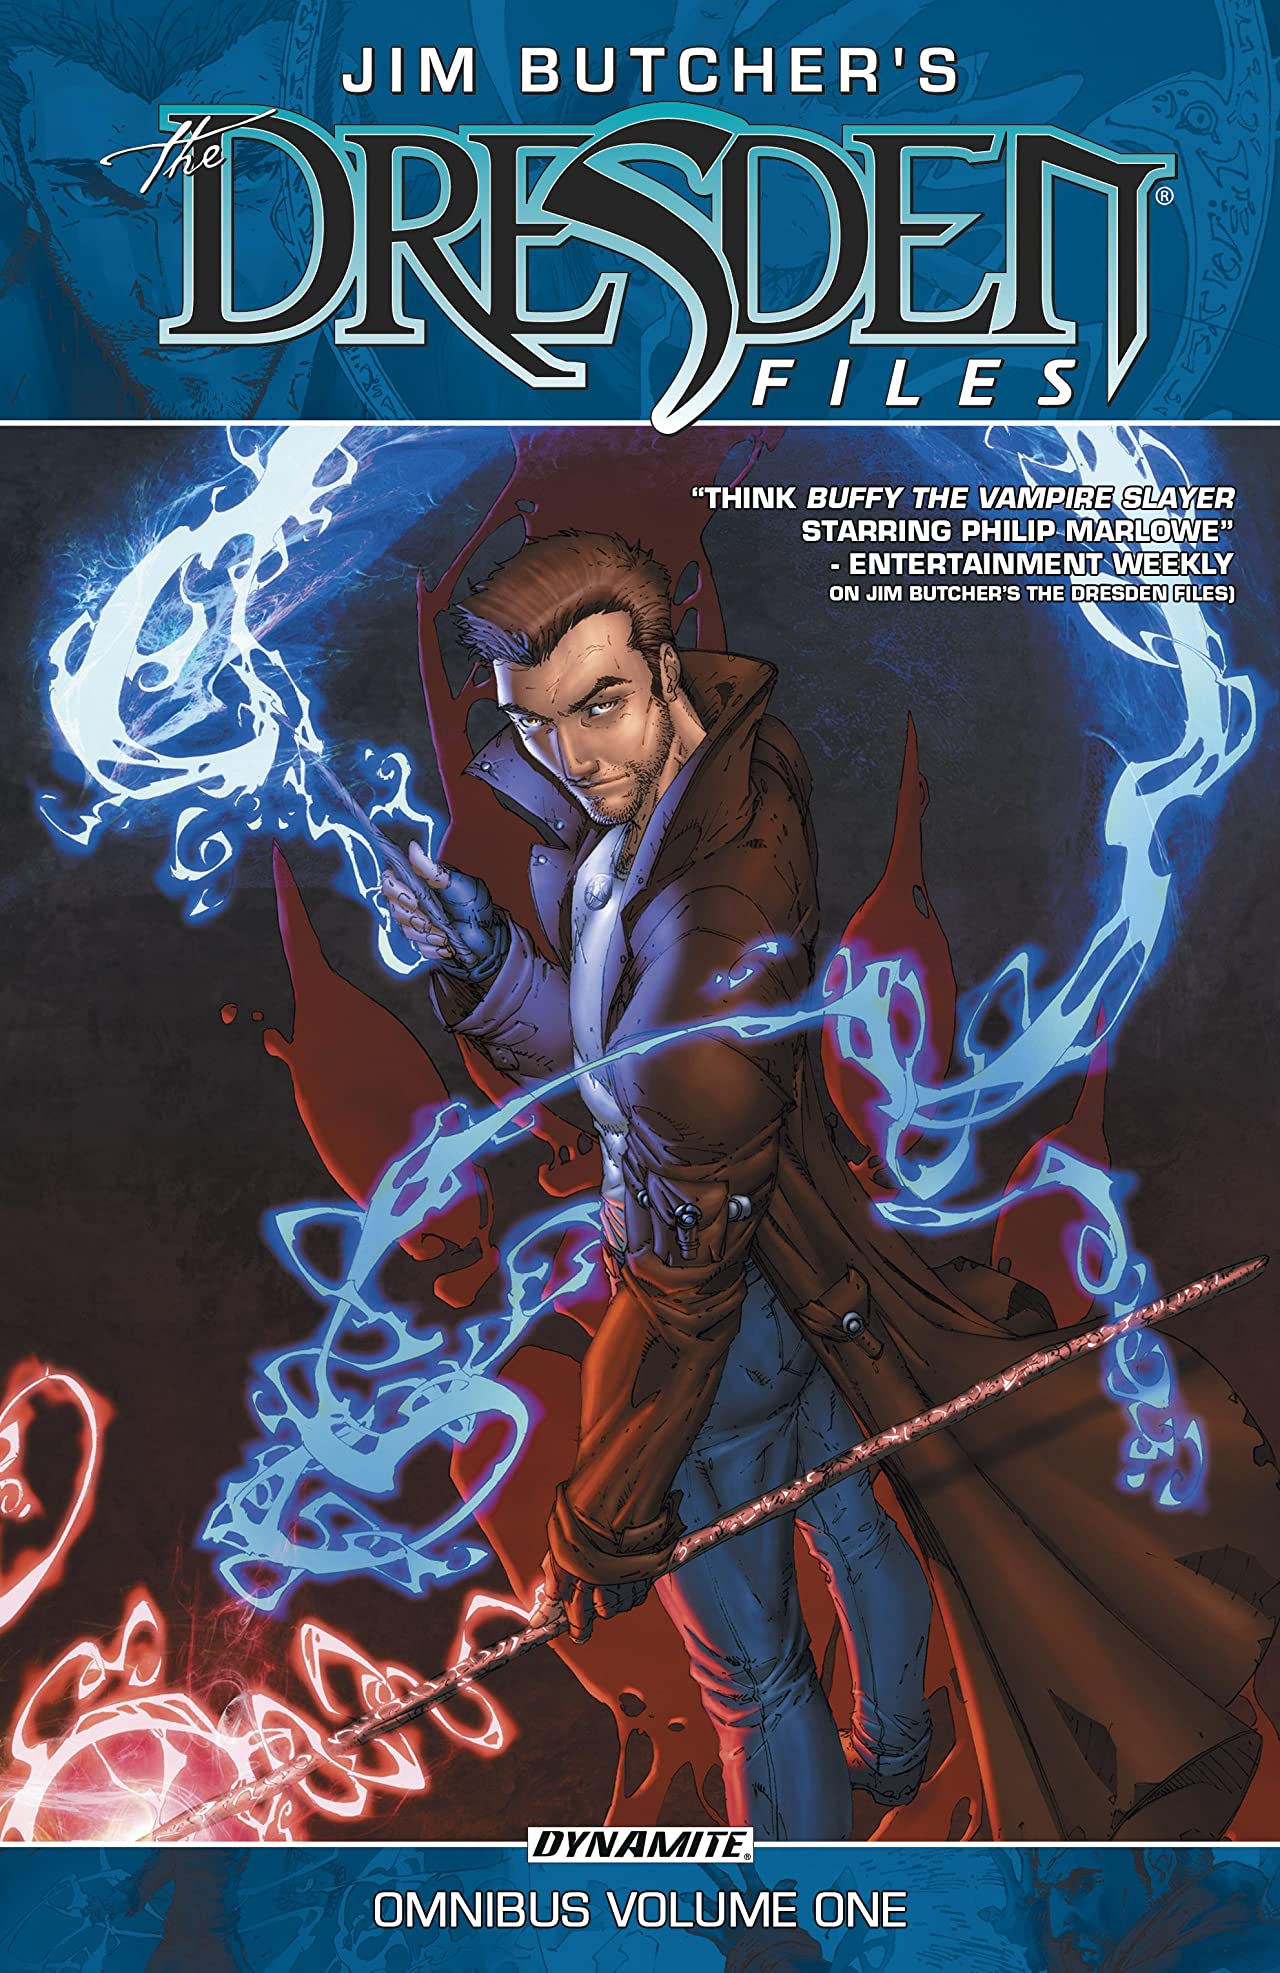 Jim Butcher's The Dresden Files Omnibus Vol. 1